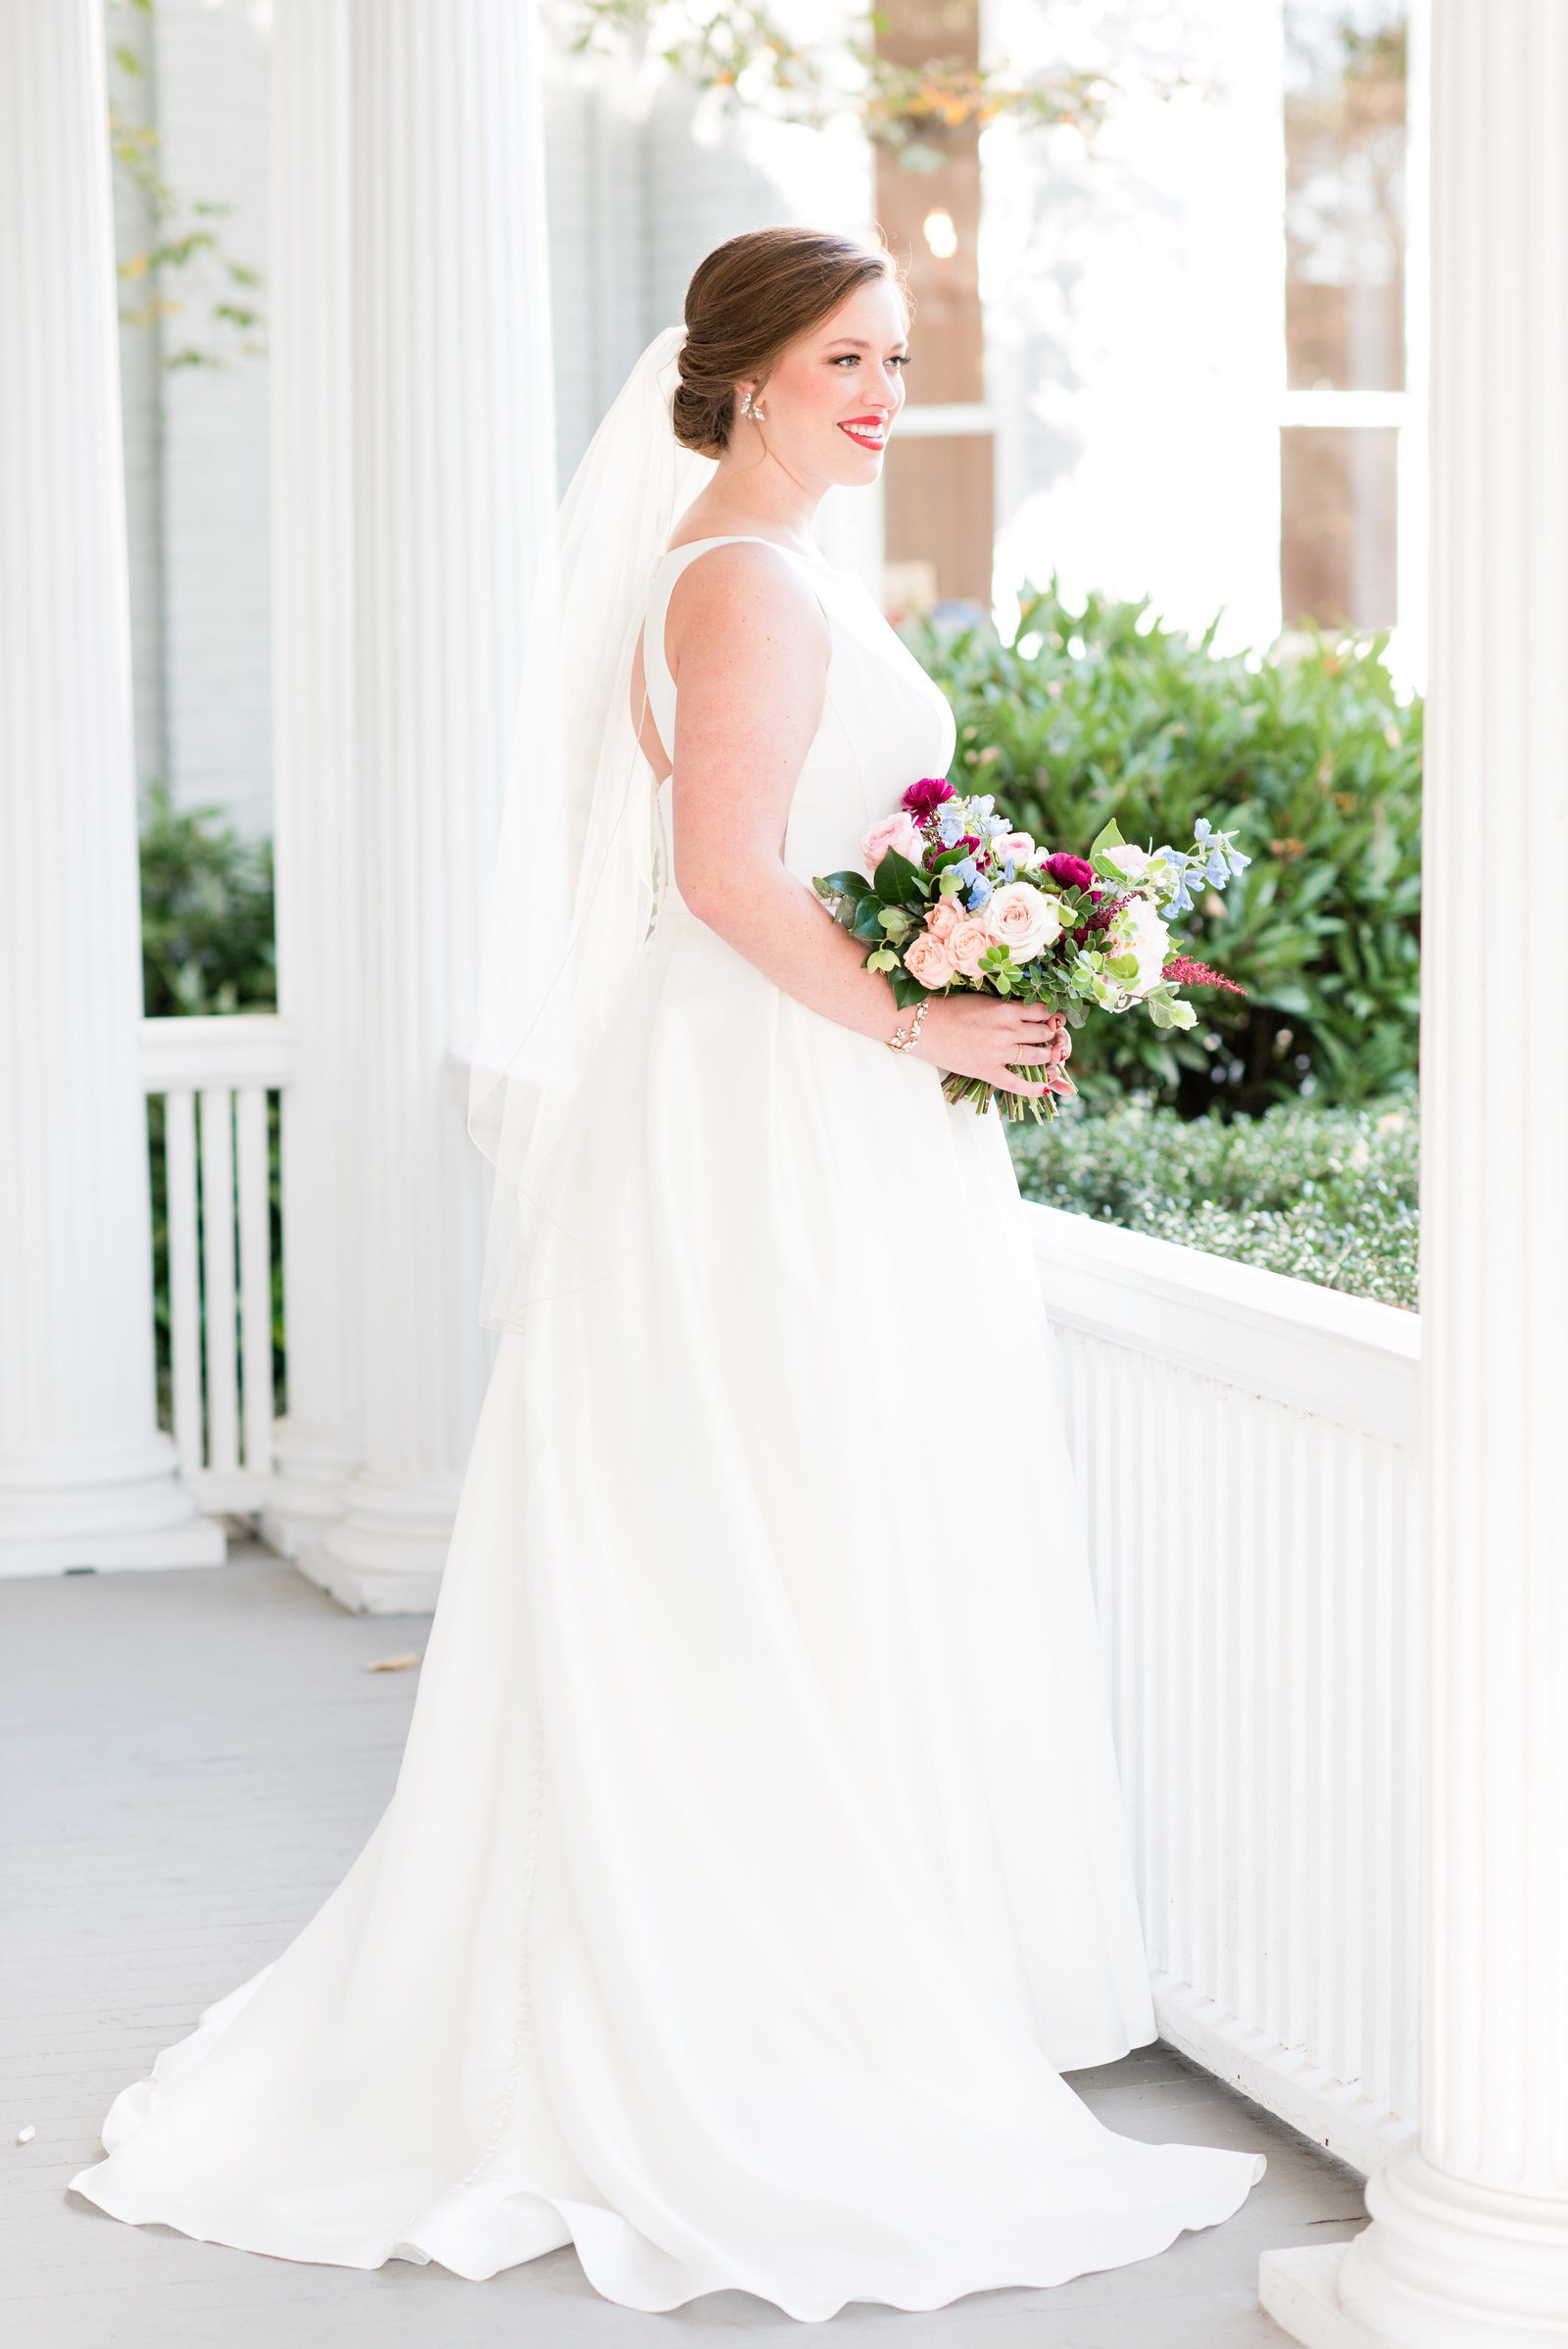 A McAlister Leftwich House Wedding, Michelle & Sara Photography, Greensboro NC2